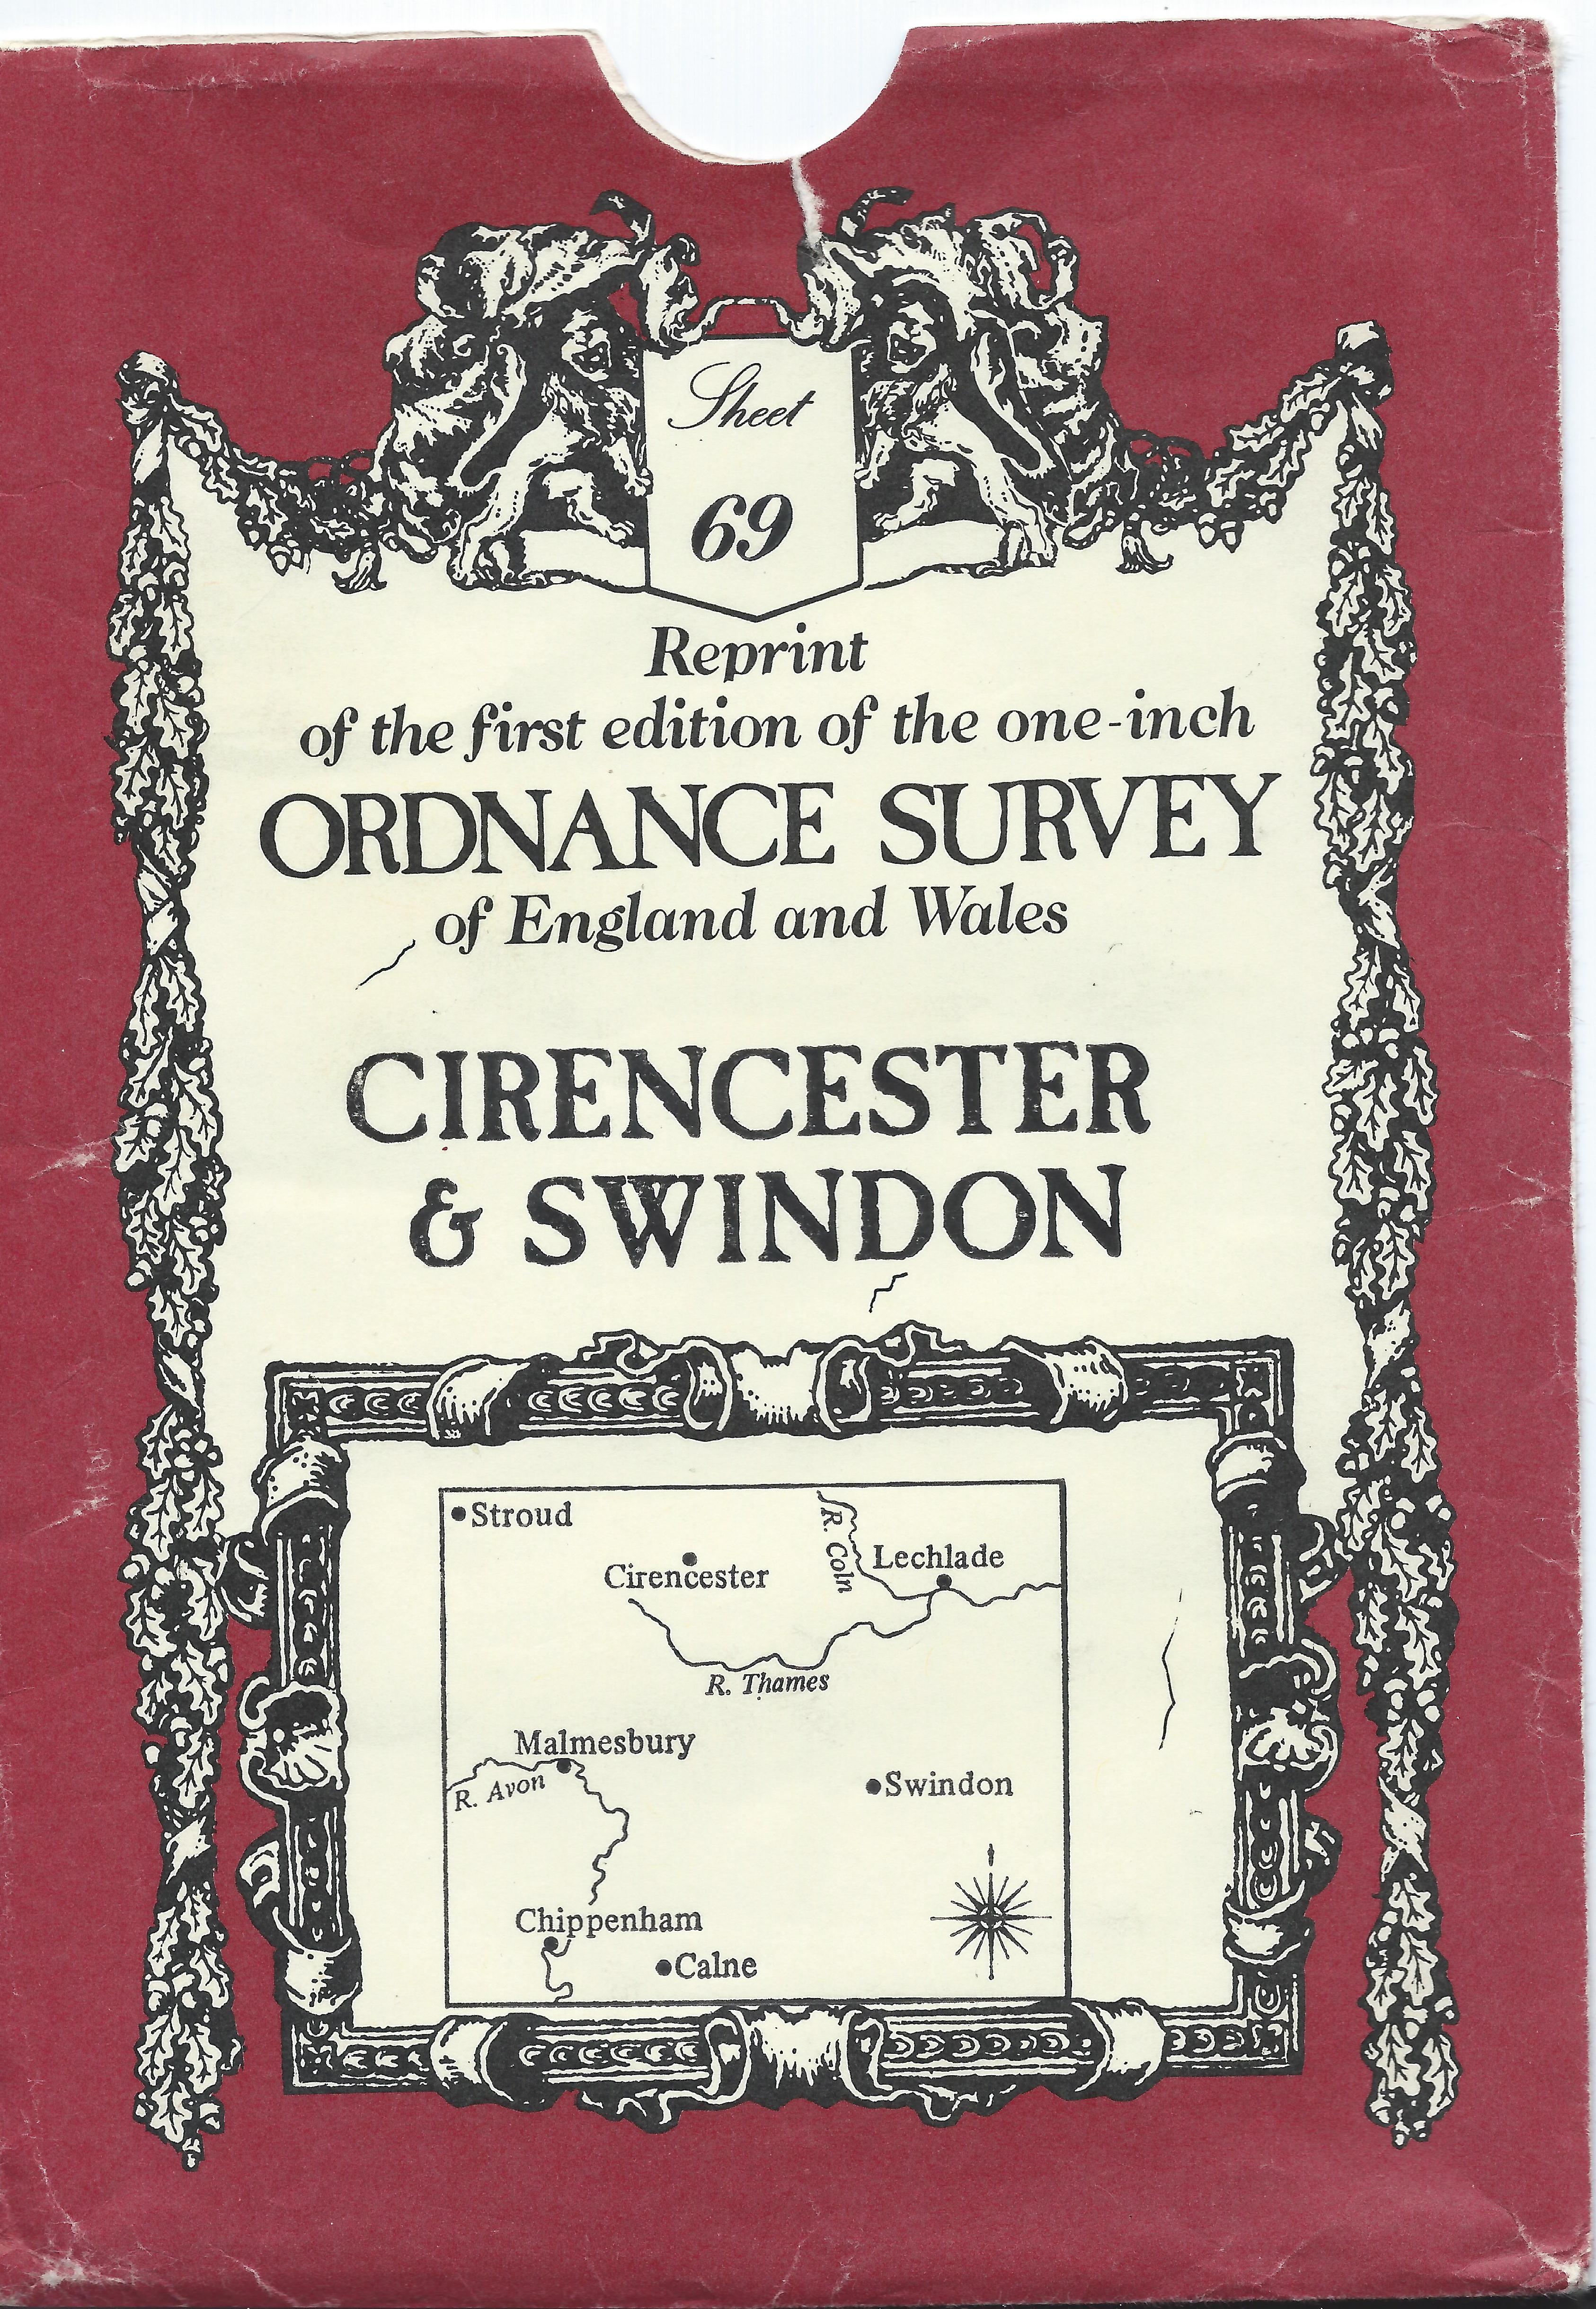 Ordnance Survey  1828 Map 69 One Inch map Cirencester & Swindon